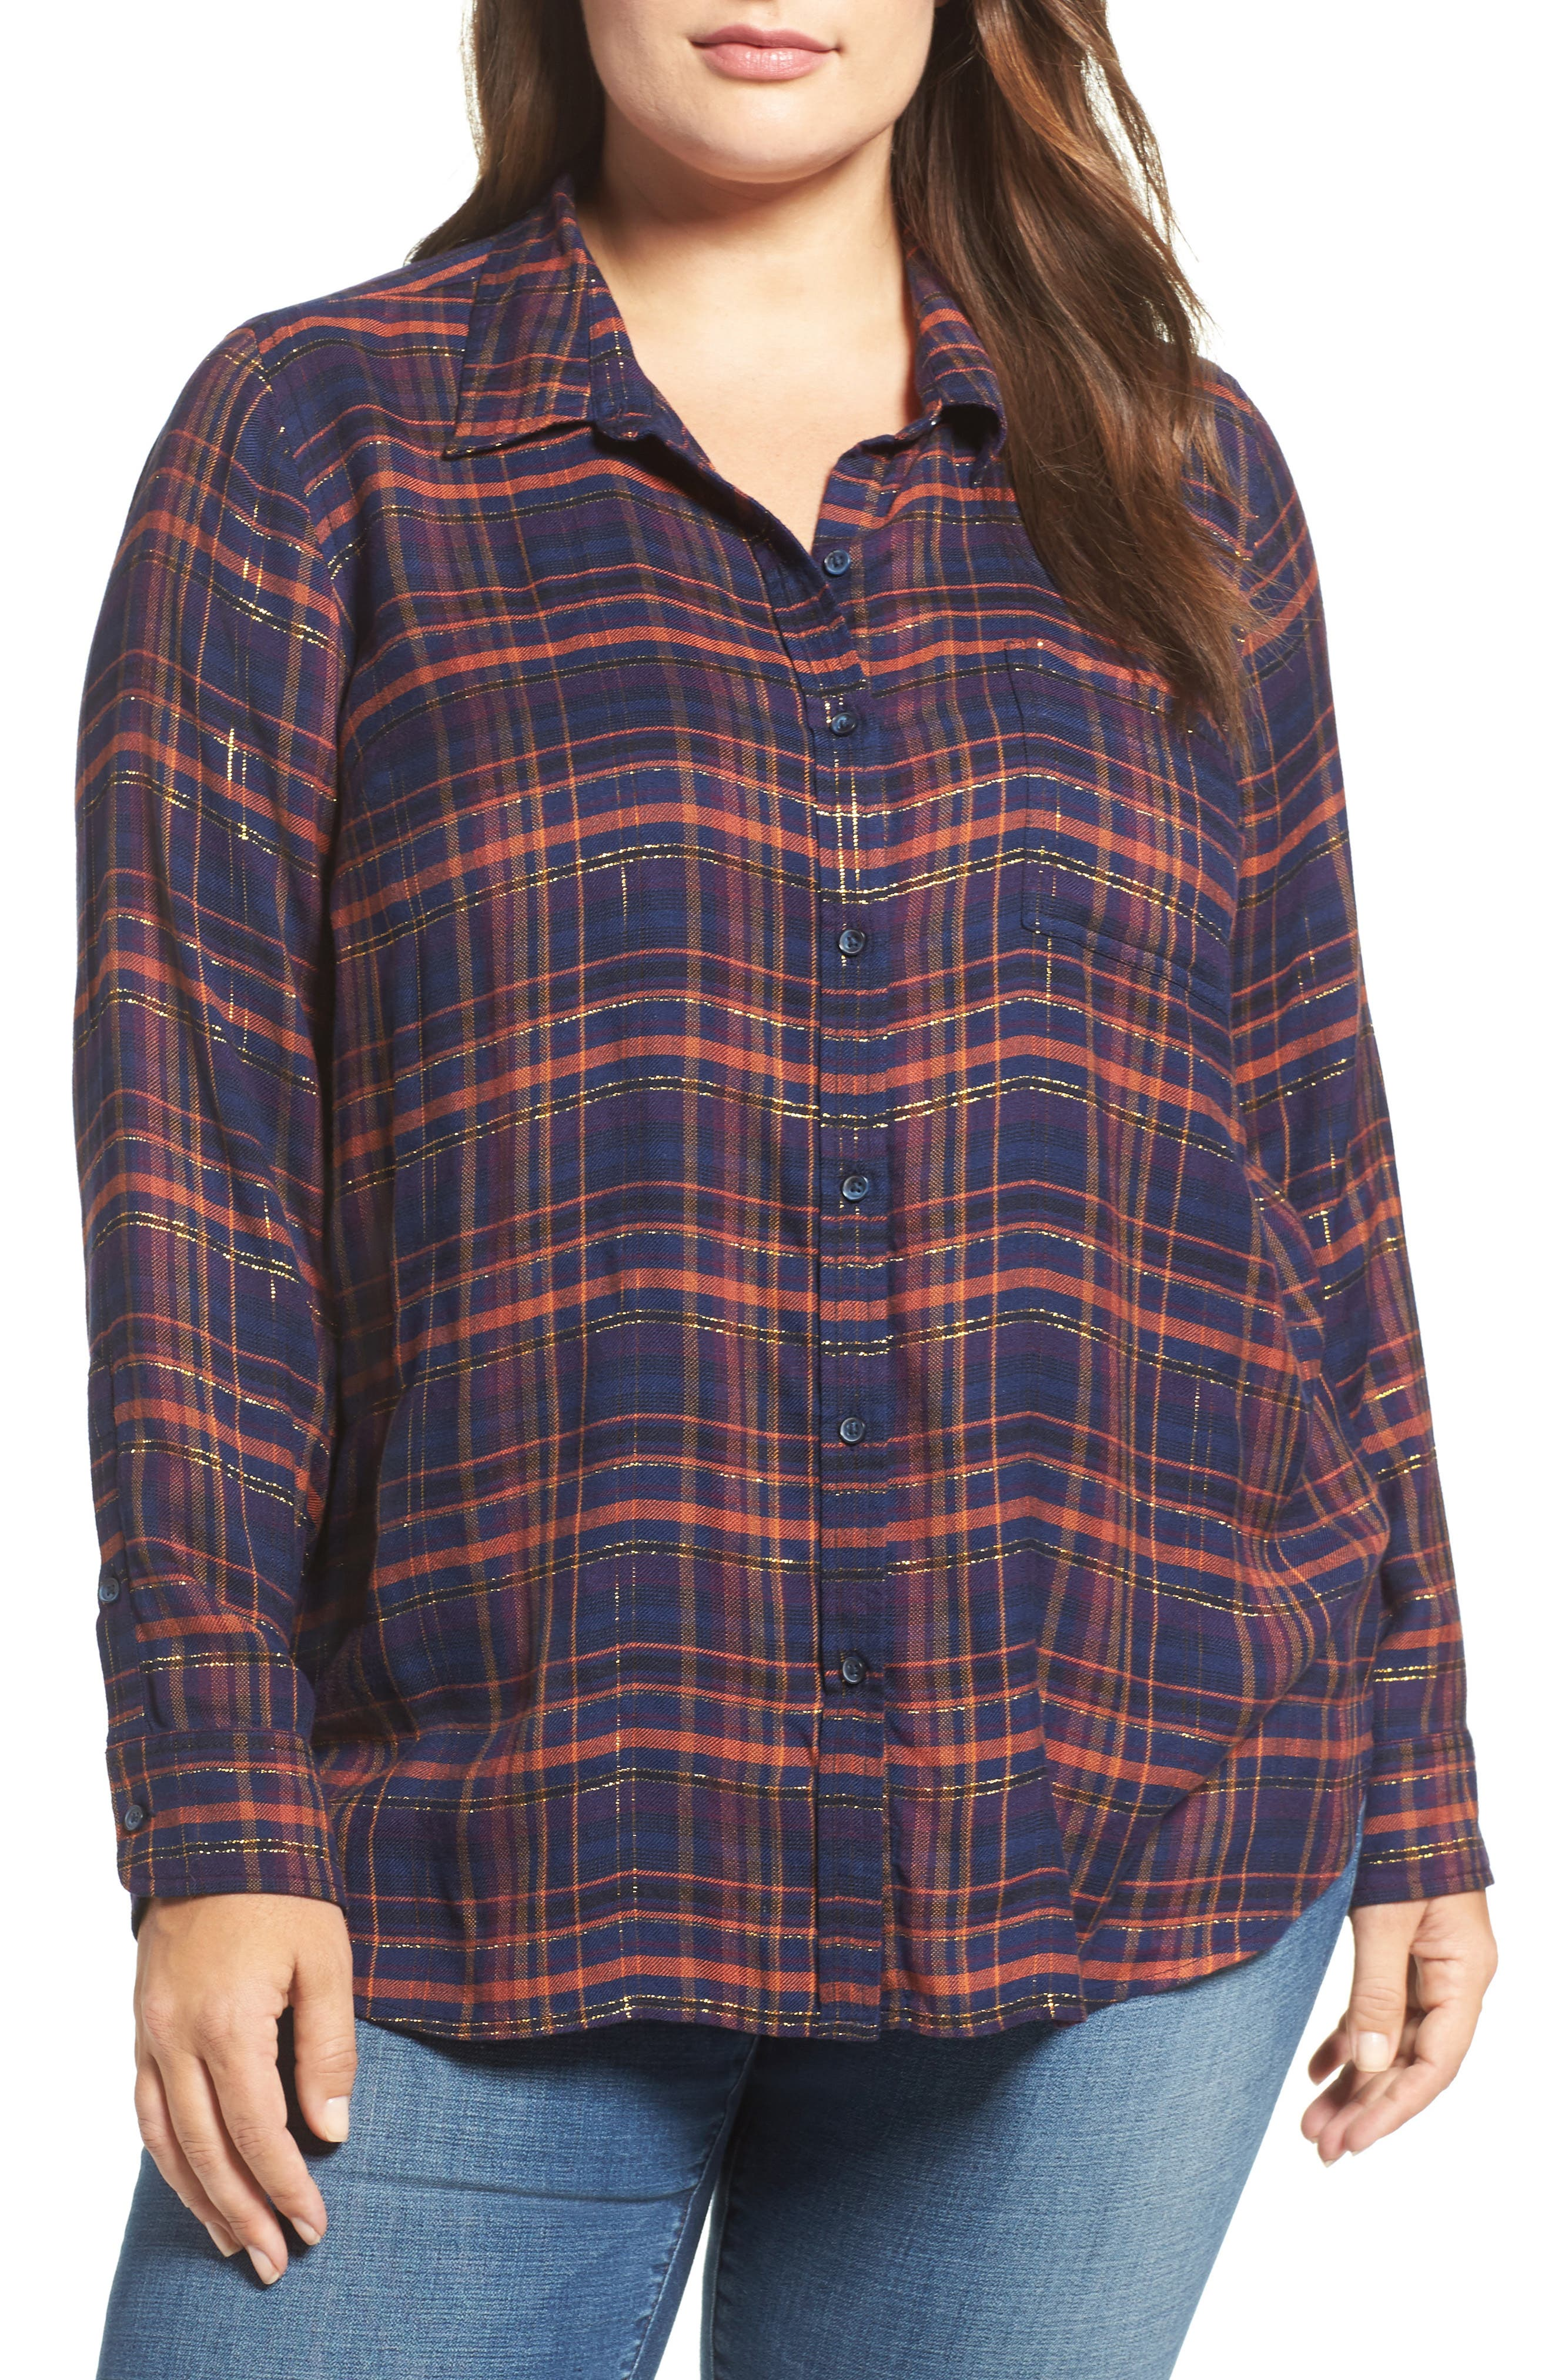 Back Overlay Plaid Shirt,                             Alternate thumbnail 2, color,                             460